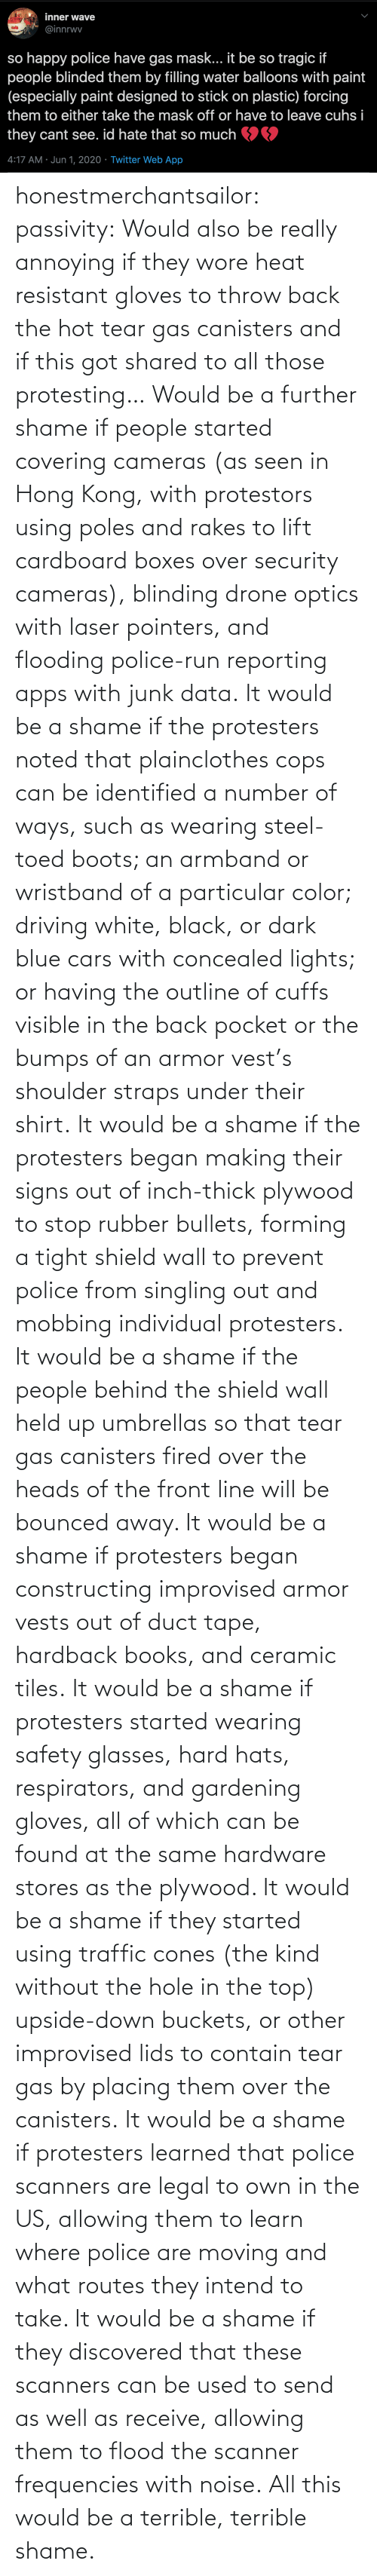 Found: honestmerchantsailor: passivity: Would also be really annoying if they wore heat resistant gloves to throw back the hot tear gas canisters and if this got shared to all those protesting… Would be a further shame if people started covering cameras (as seen in Hong Kong, with protestors using poles and rakes to lift cardboard boxes over security cameras), blinding drone optics with laser pointers, and flooding police-run reporting apps with junk data. It would be a shame if the protesters noted that plainclothes cops can be identified a number of ways, such as wearing steel-toed boots; an armband or wristband of a particular color; driving white, black, or dark blue cars with concealed lights; or having the outline of cuffs visible in the back pocket or the bumps of an armor vest's shoulder straps under their shirt. It would be a shame if the protesters began making their signs out of inch-thick plywood to stop rubber bullets, forming a tight shield wall to prevent police from singling out and mobbing individual protesters. It would be a shame if the people behind the shield wall held up umbrellas so that tear gas canisters fired over the heads of the front line will be bounced away. It would be a shame if protesters began constructing improvised armor vests out of duct tape, hardback books, and ceramic tiles. It would be a shame if protesters started wearing safety glasses, hard hats, respirators, and gardening gloves, all of which can be found at the same hardware stores as the plywood. It would be a shame if they started using traffic cones (the kind without the hole in the top) upside-down buckets, or other improvised lids to contain tear gas by placing them over the canisters. It would be a shame if protesters learned that police scanners are legal to own in the US, allowing them to learn where police are moving and what routes they intend to take. It would be a shame if they discovered that these scanners can be used to send as well as receive, allowing them to flood the scanner frequencies with noise. All this would be a terrible, terrible shame.